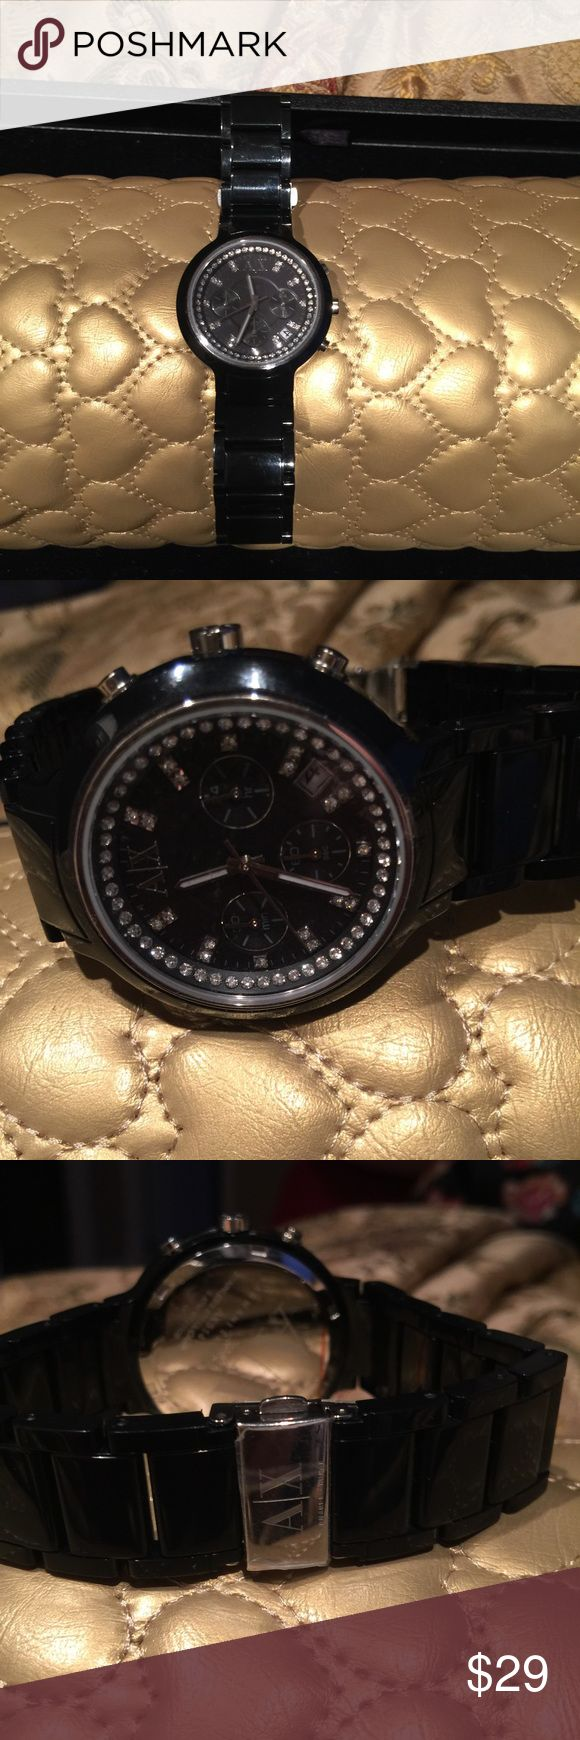 Authentic Armani!!! Gorgeous Armani watch!! Never used... All sales are final... Accessories Watches